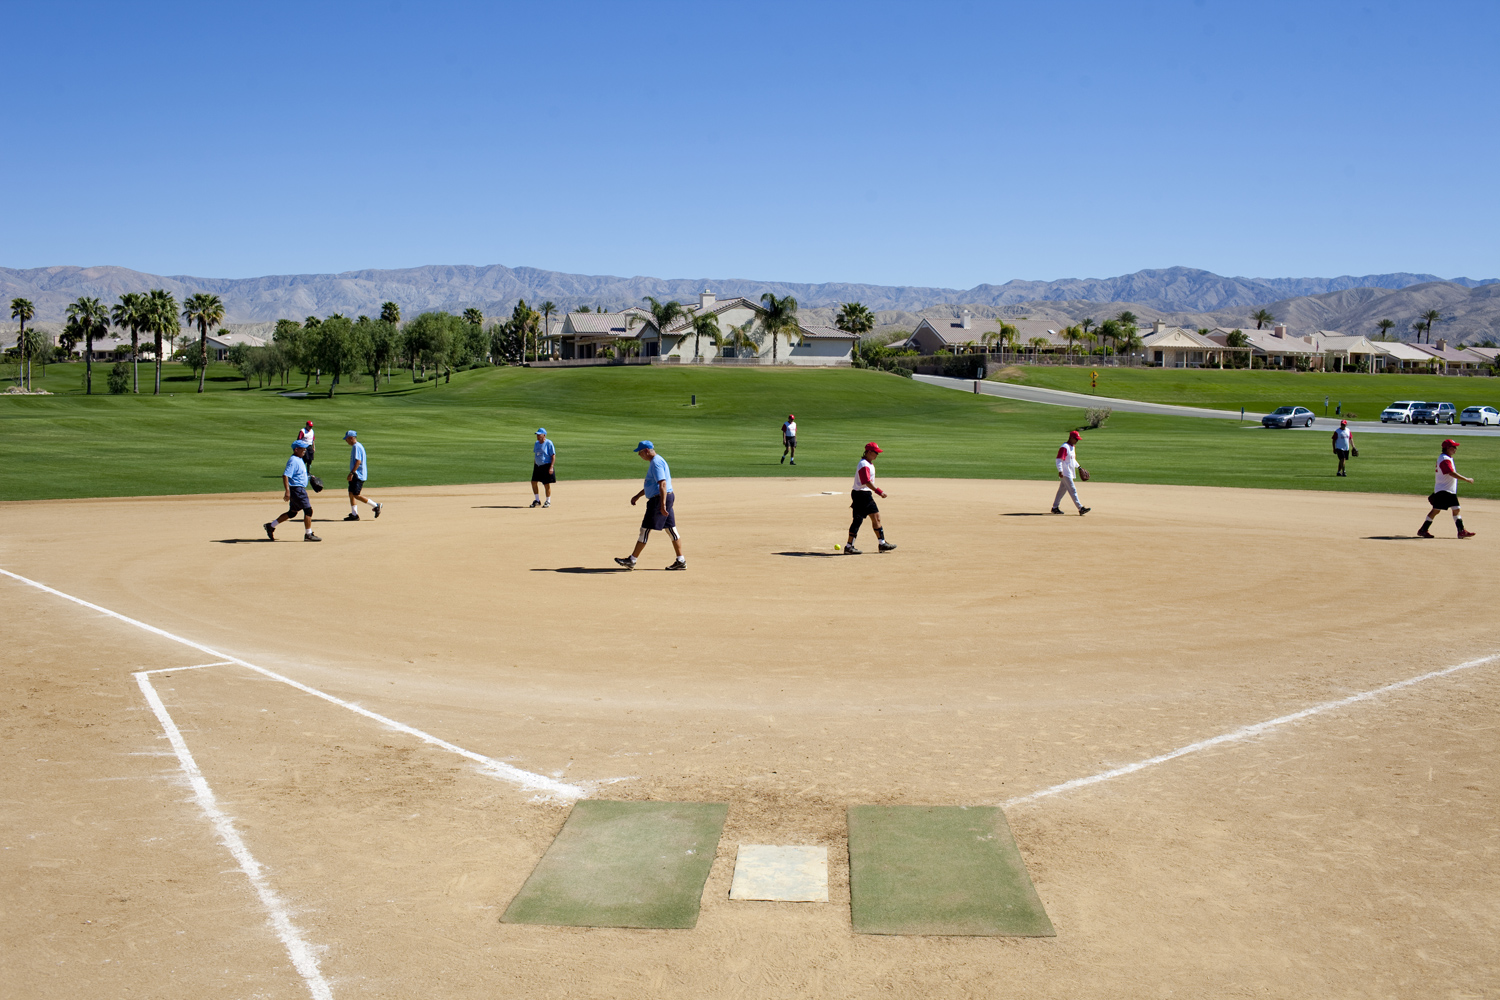 Sun City teams at a softball game, in Indio, California on April 1, 2011. Both teams are made up of retirees 55 and older.